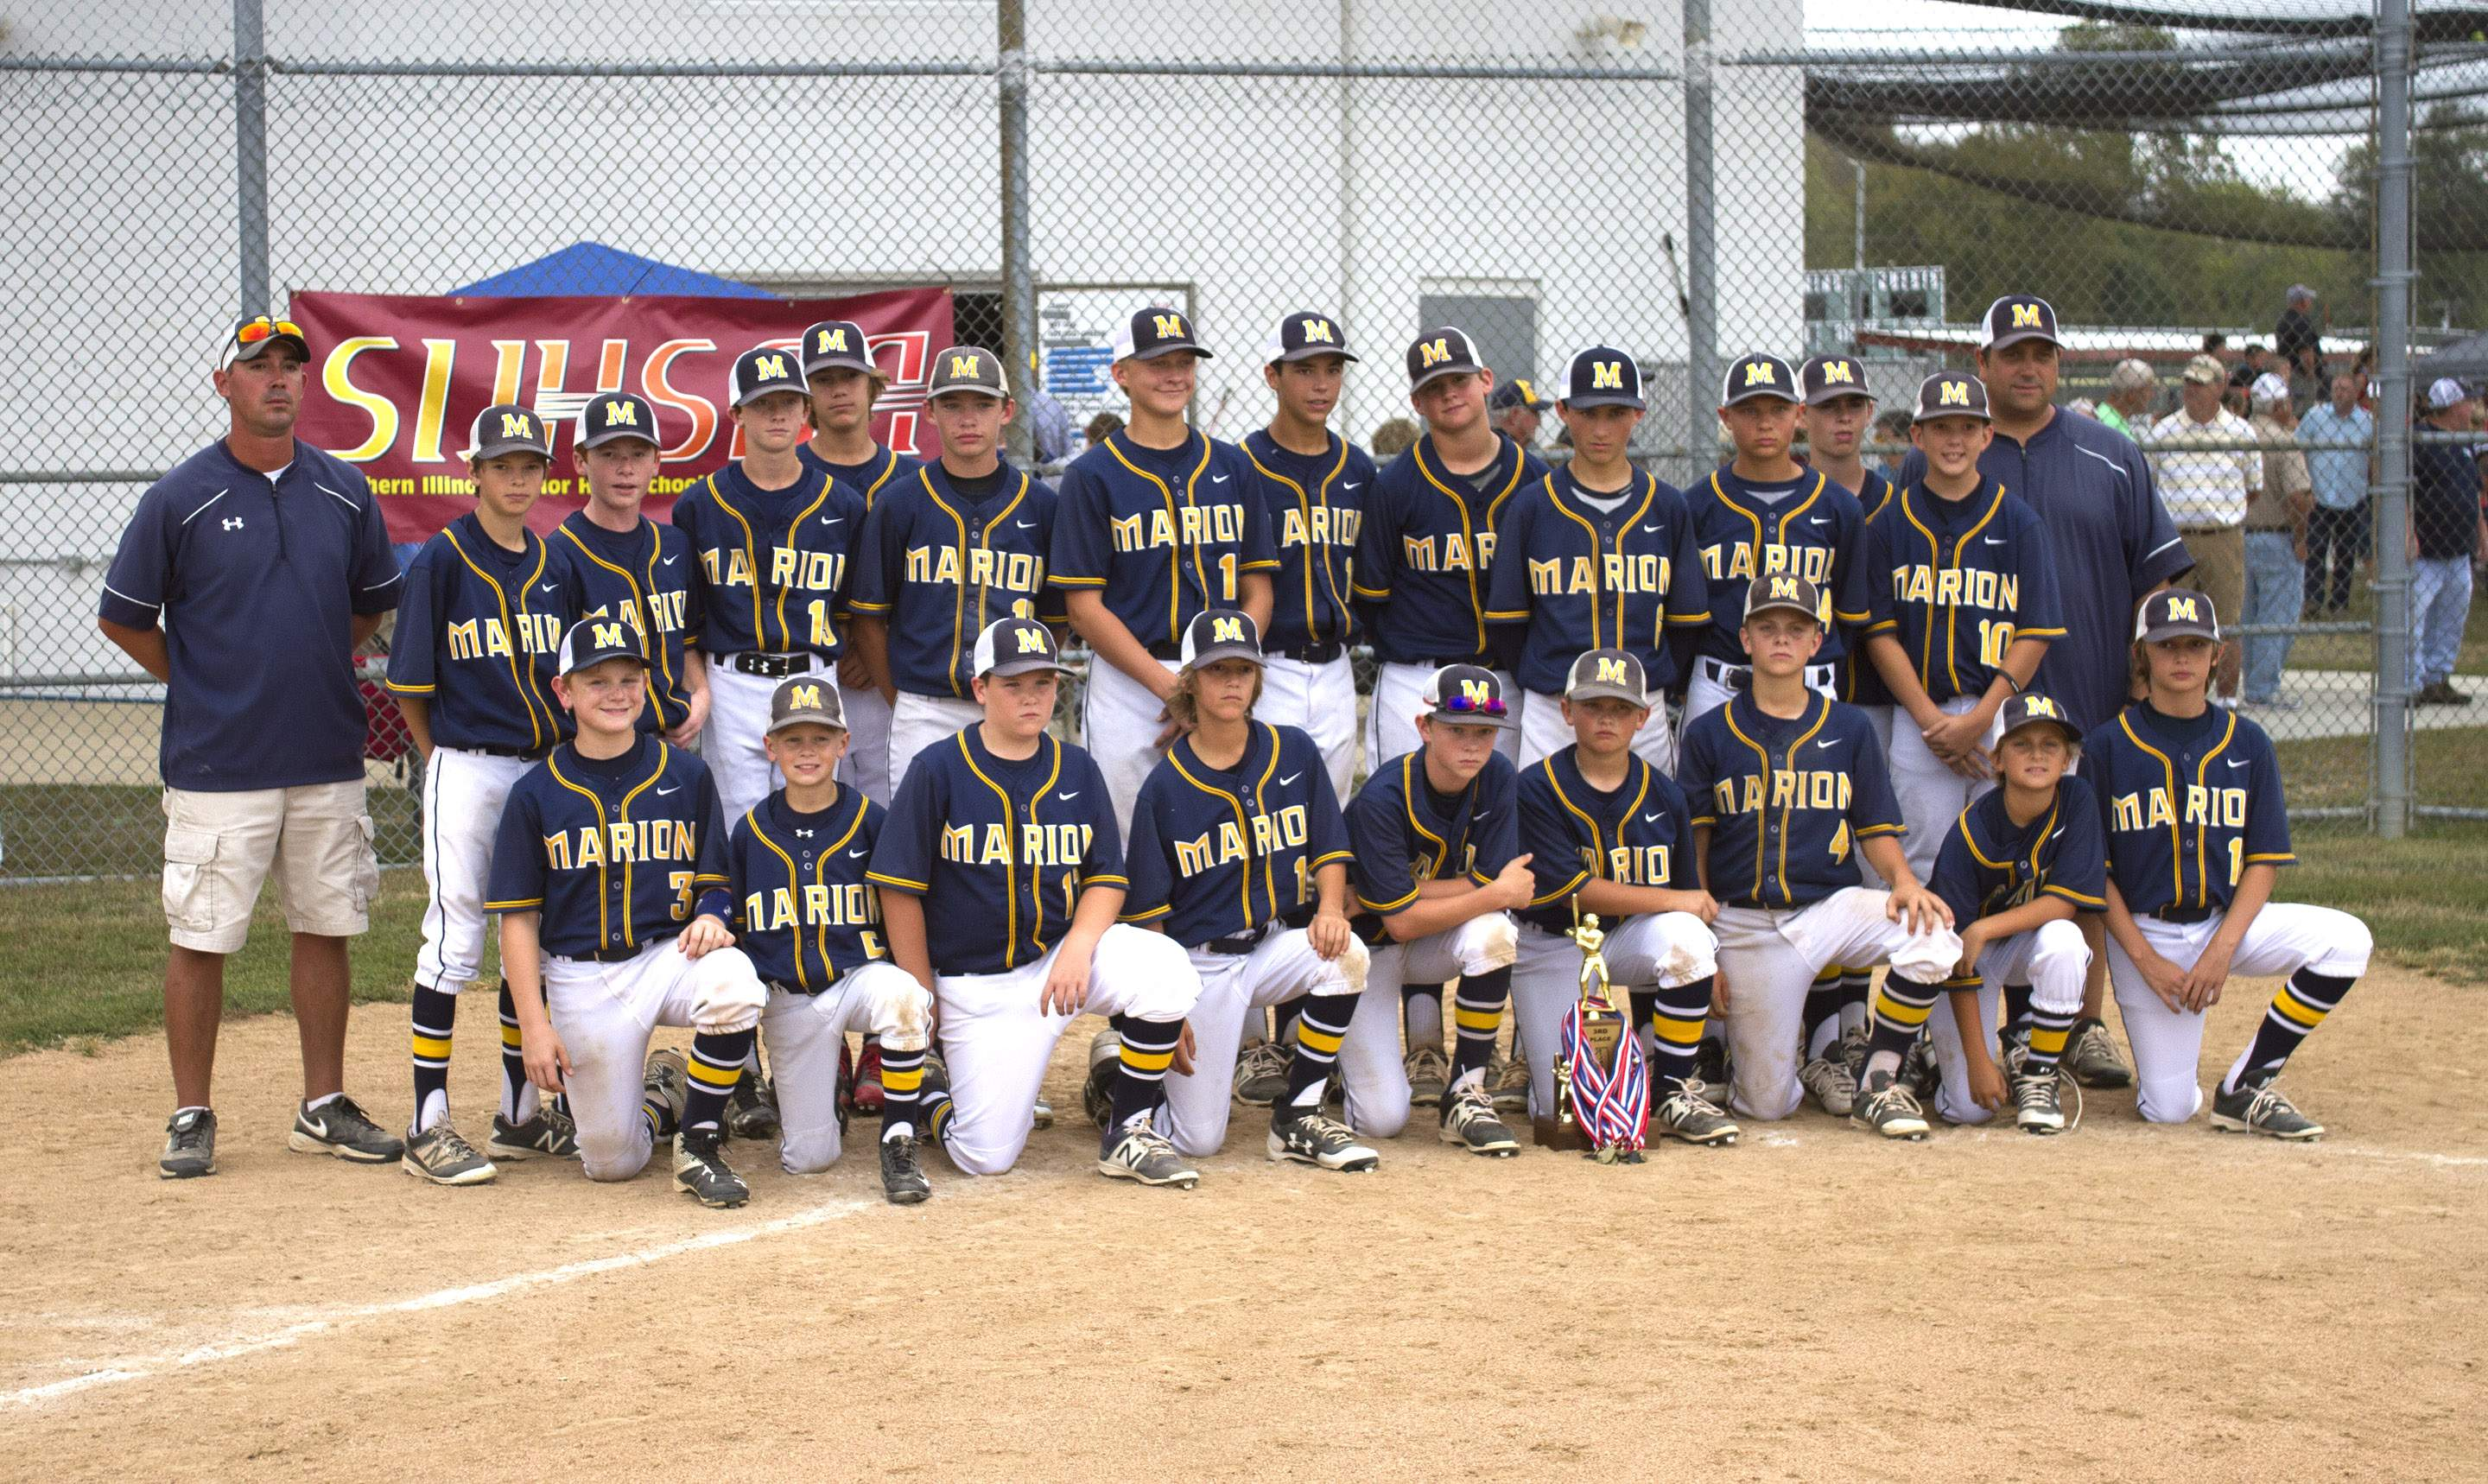 The MJHS baseball team poses with the third place trophy.